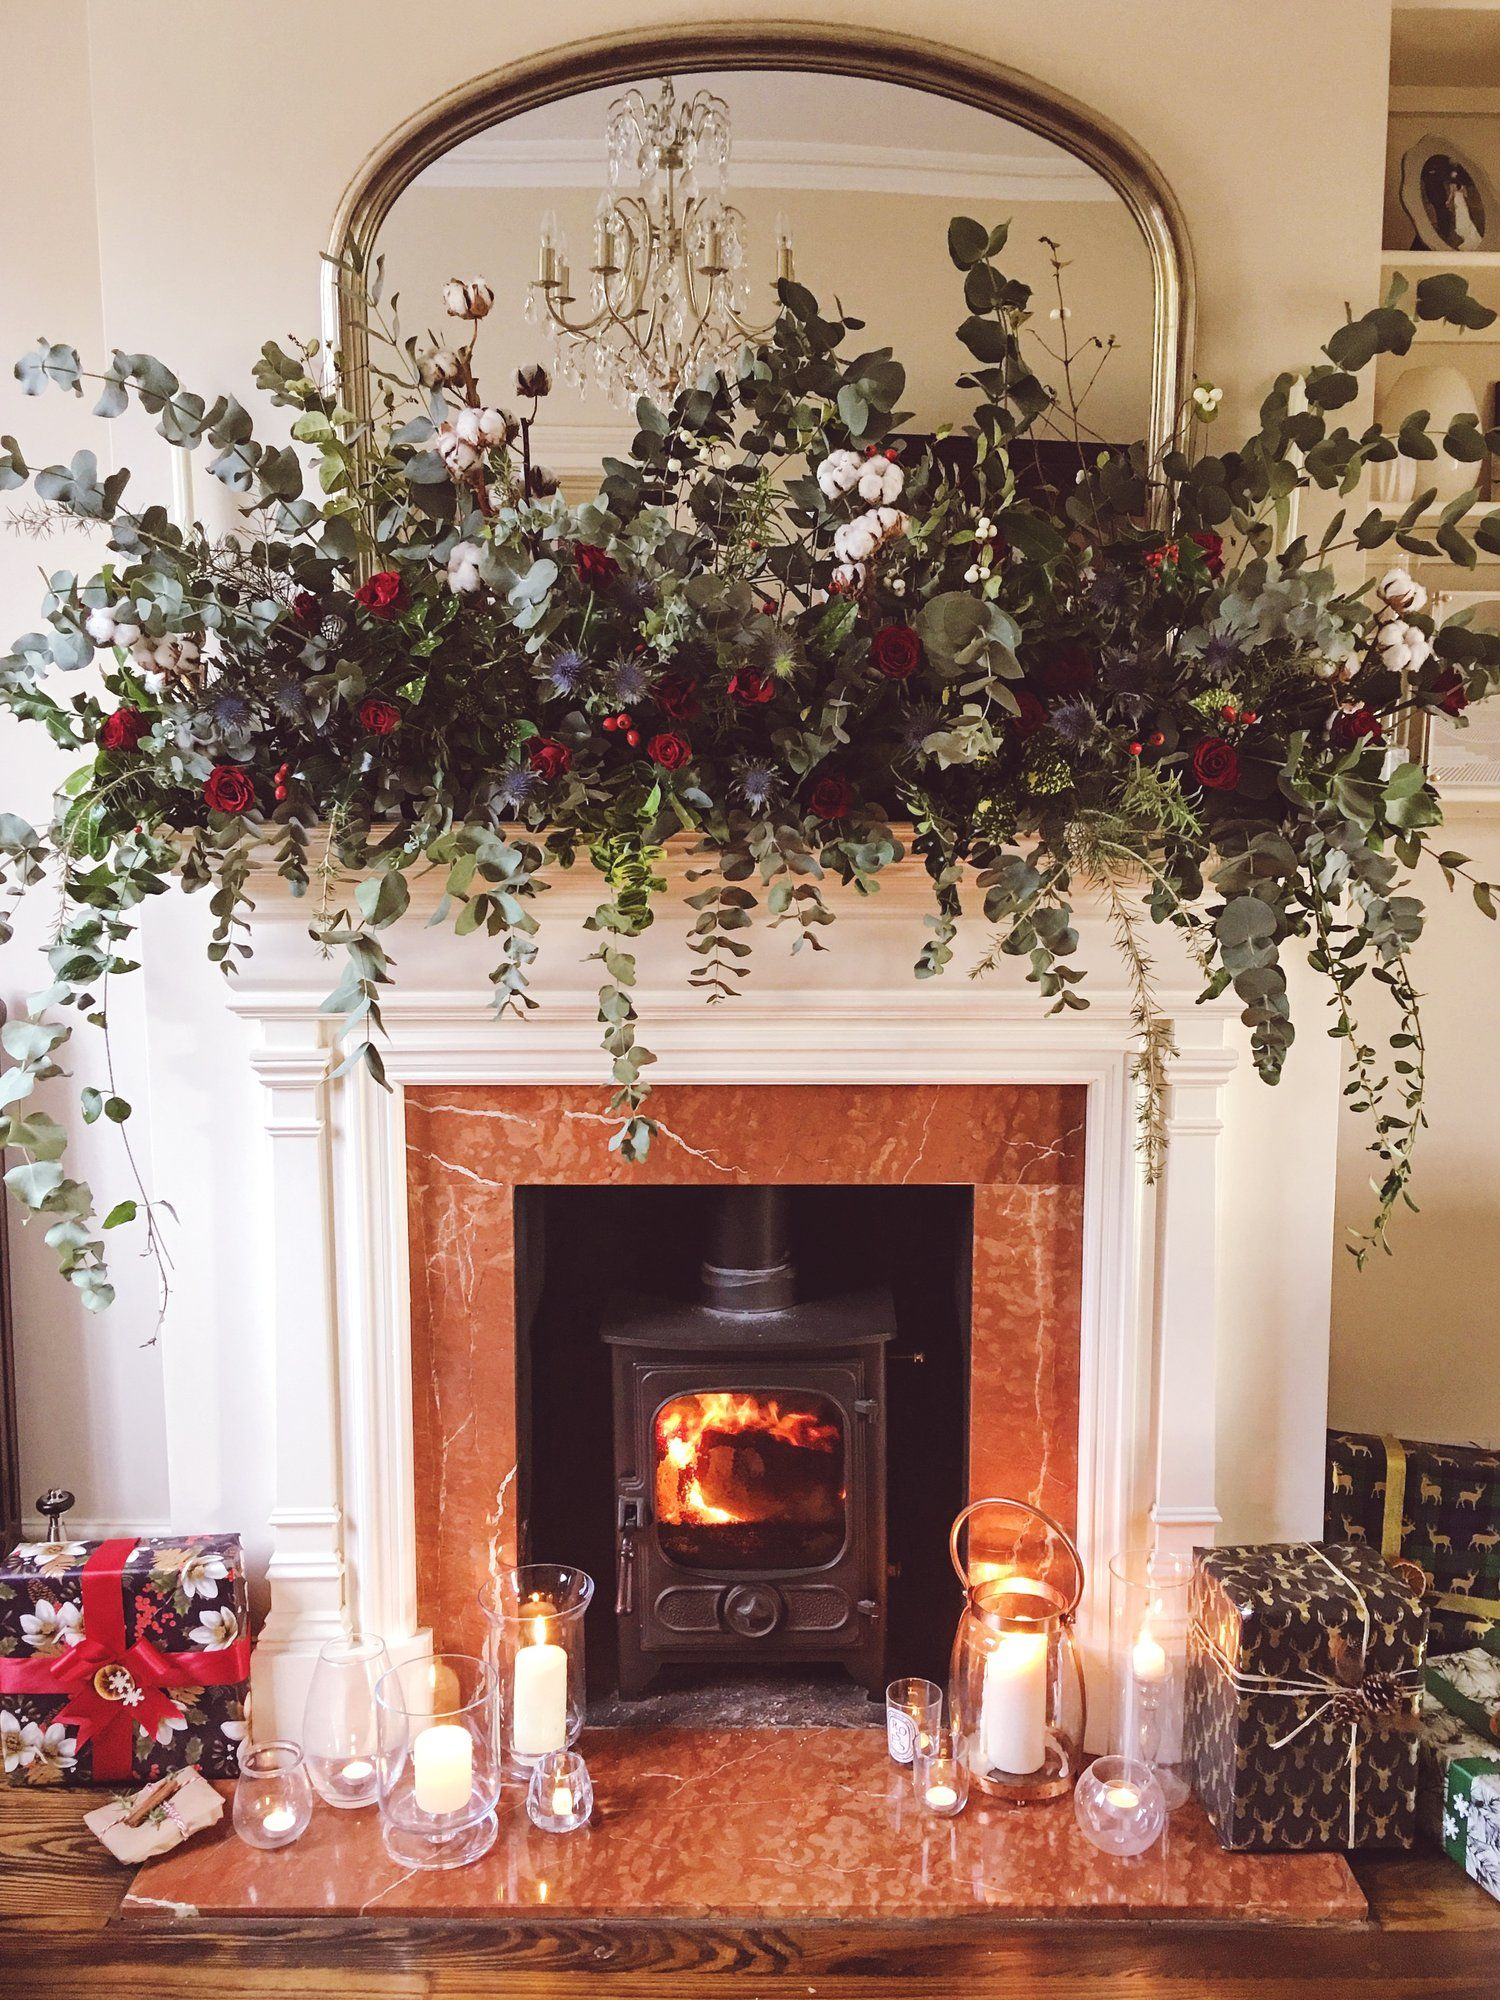 My Home At Christmas (+ How To Make This Fireplace Garland